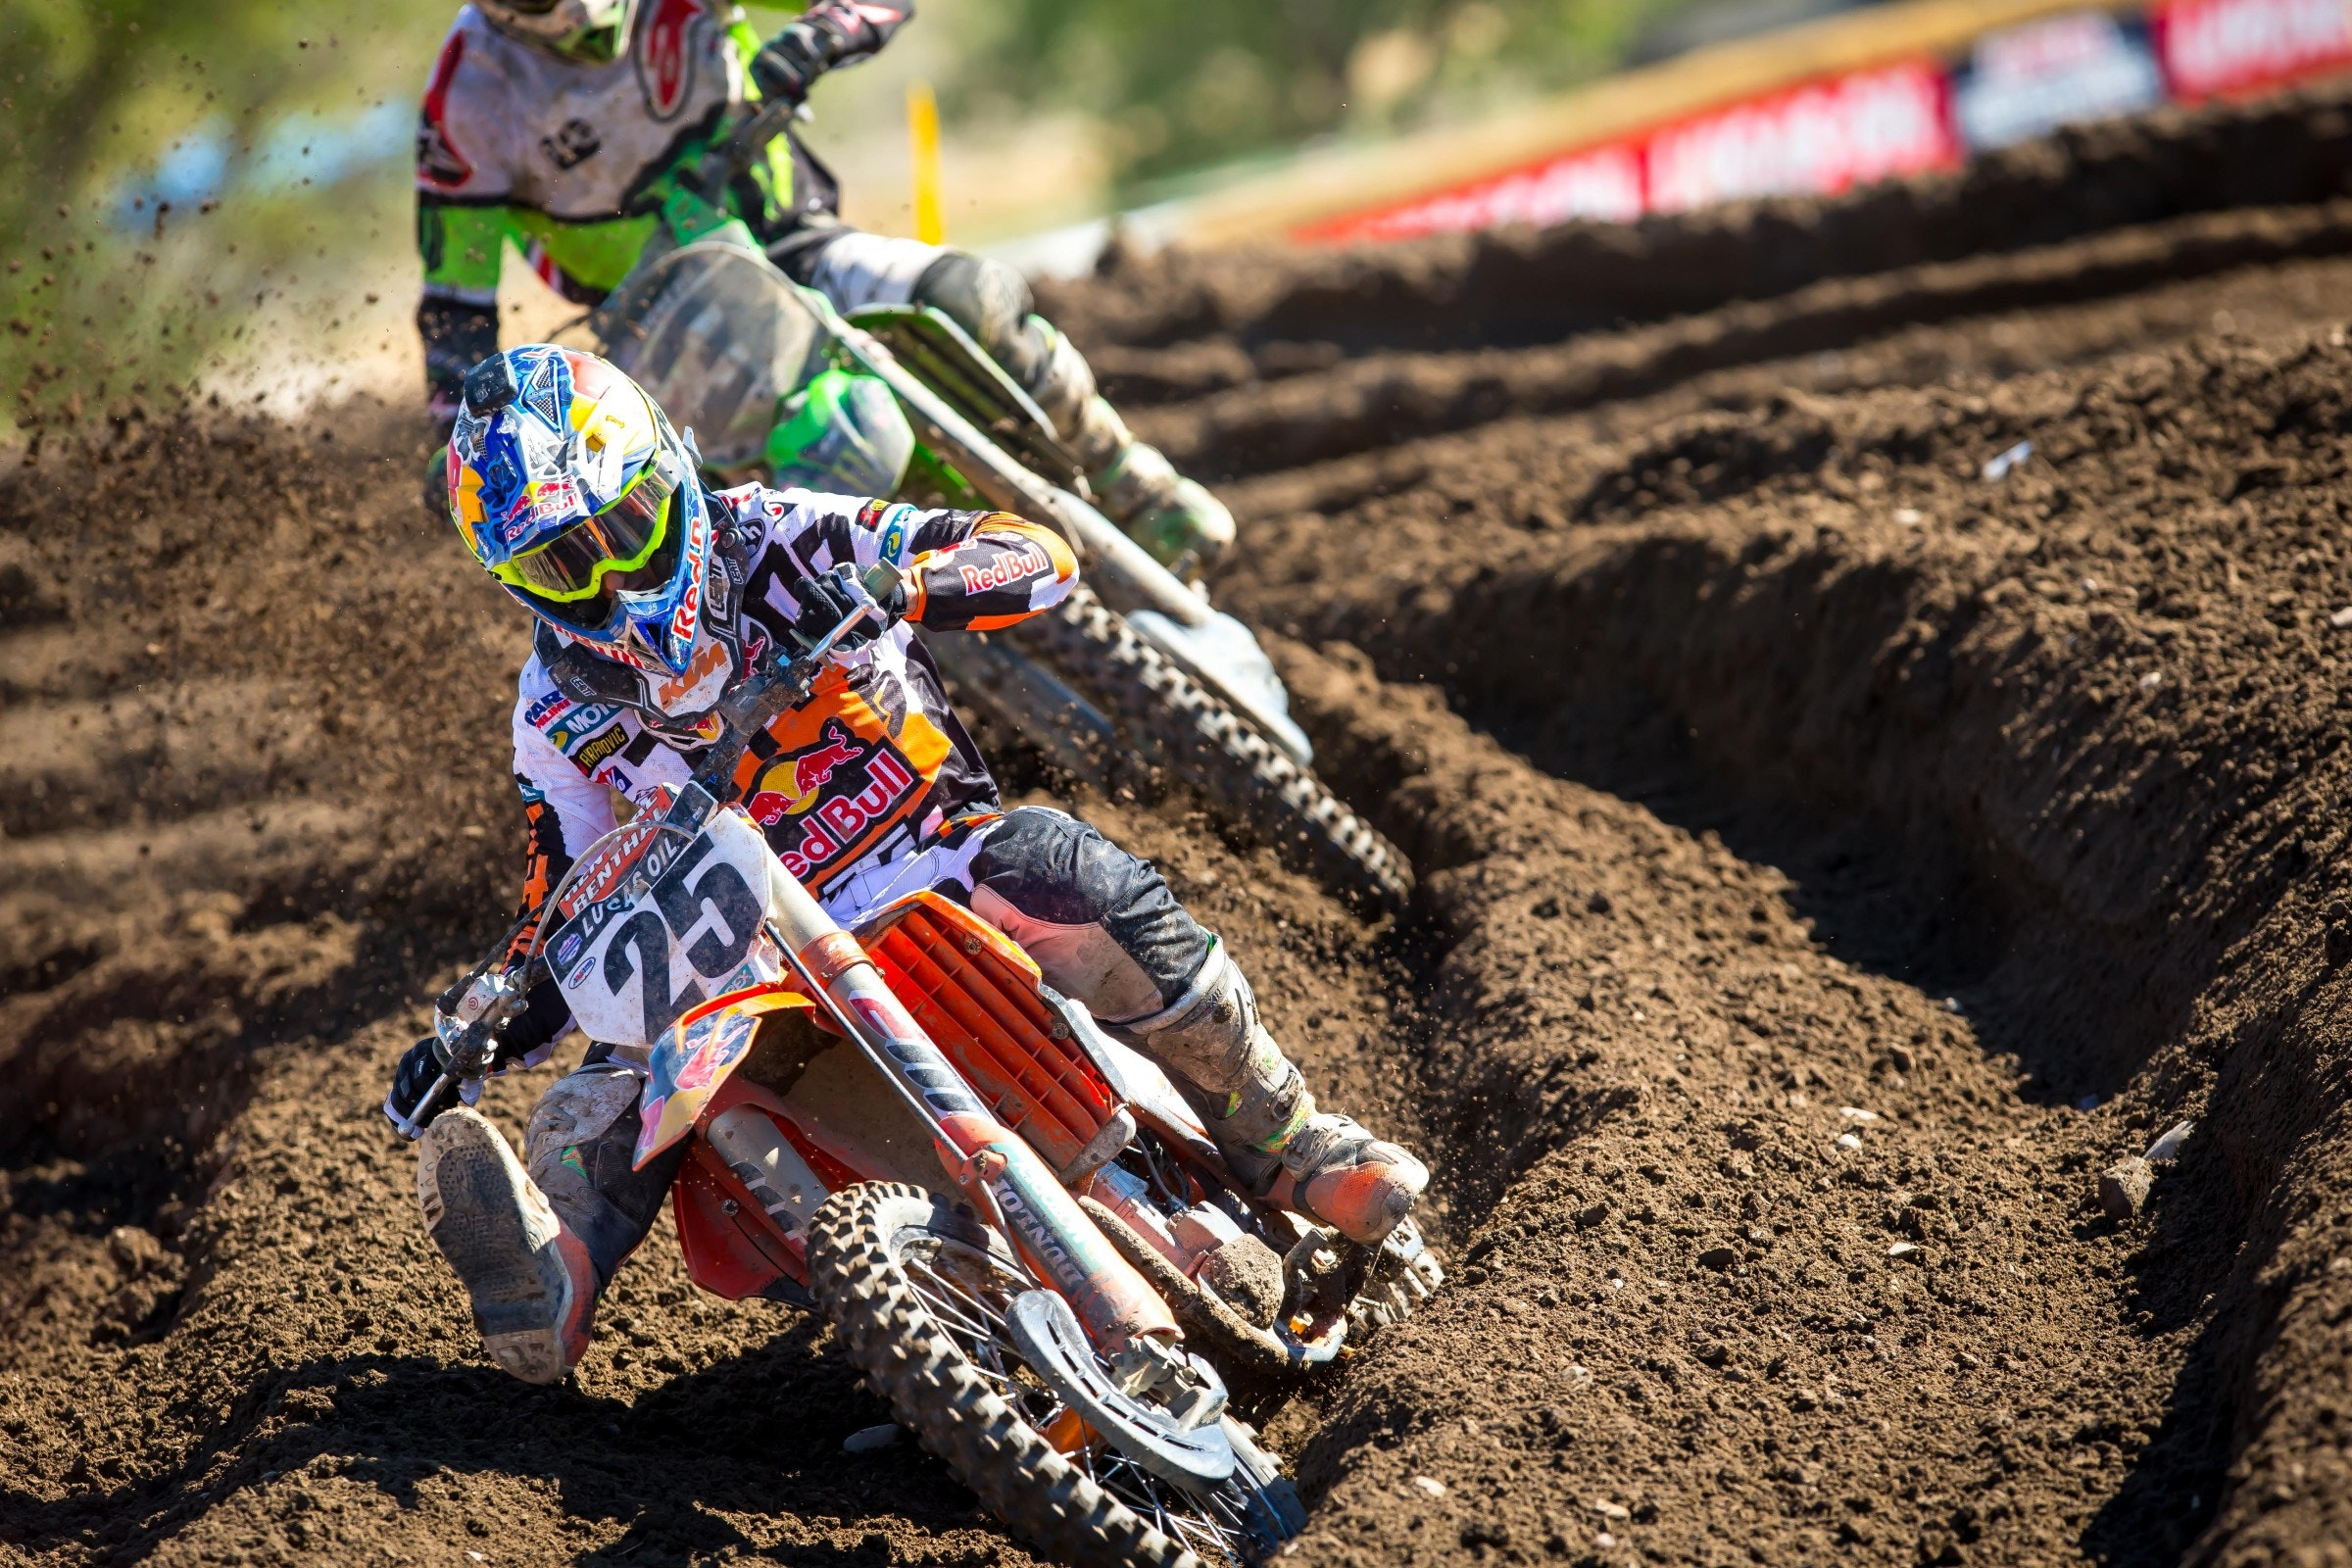 The battle between Tomac and Musquin was fantastic, lasting several laps.